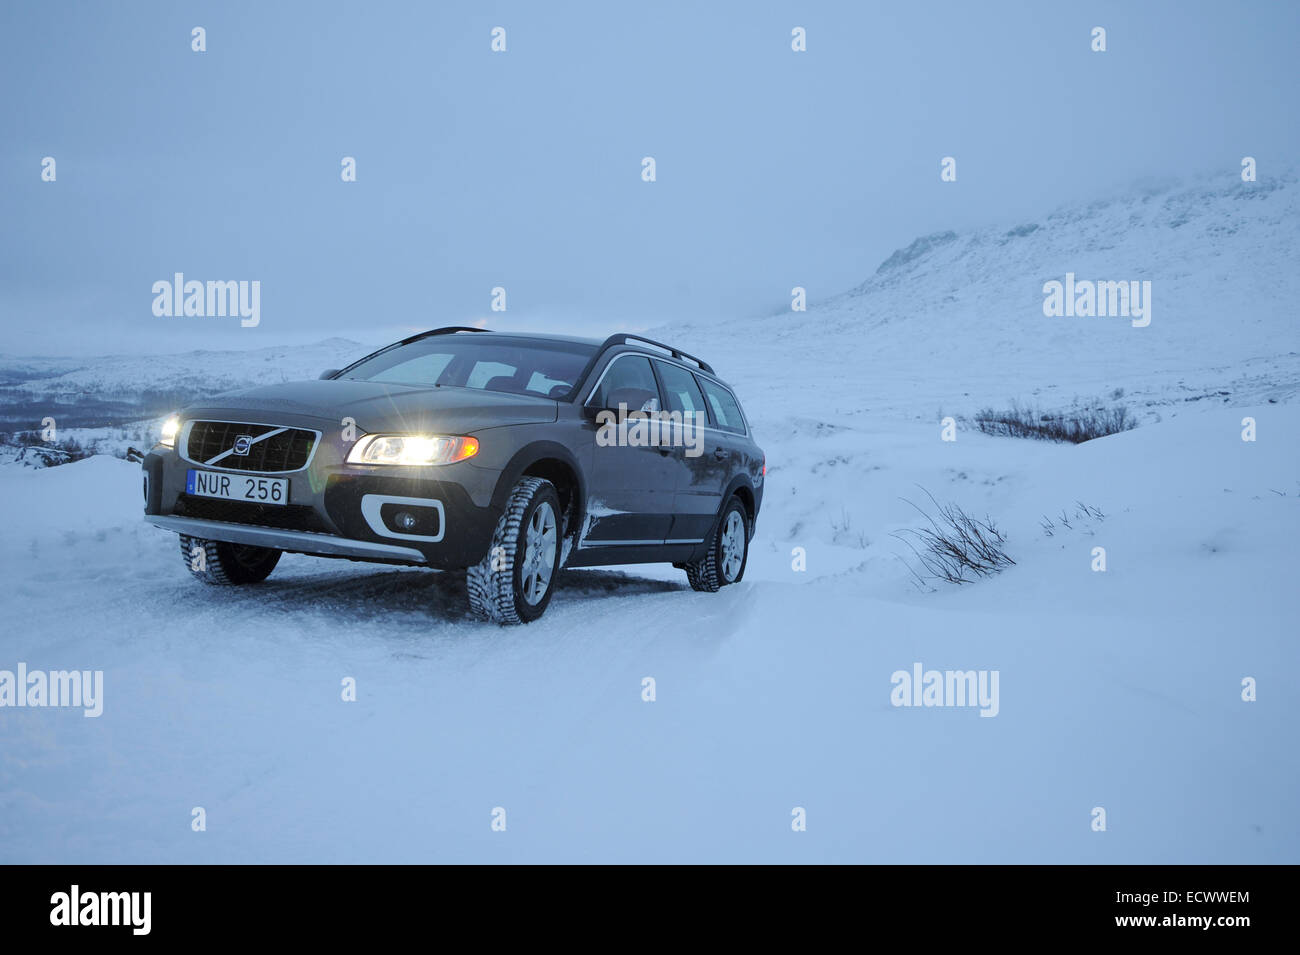 Car driving on snow and ice near the arctic circle in Sweden. Volvo XC70 using winter tyres - Stock Image